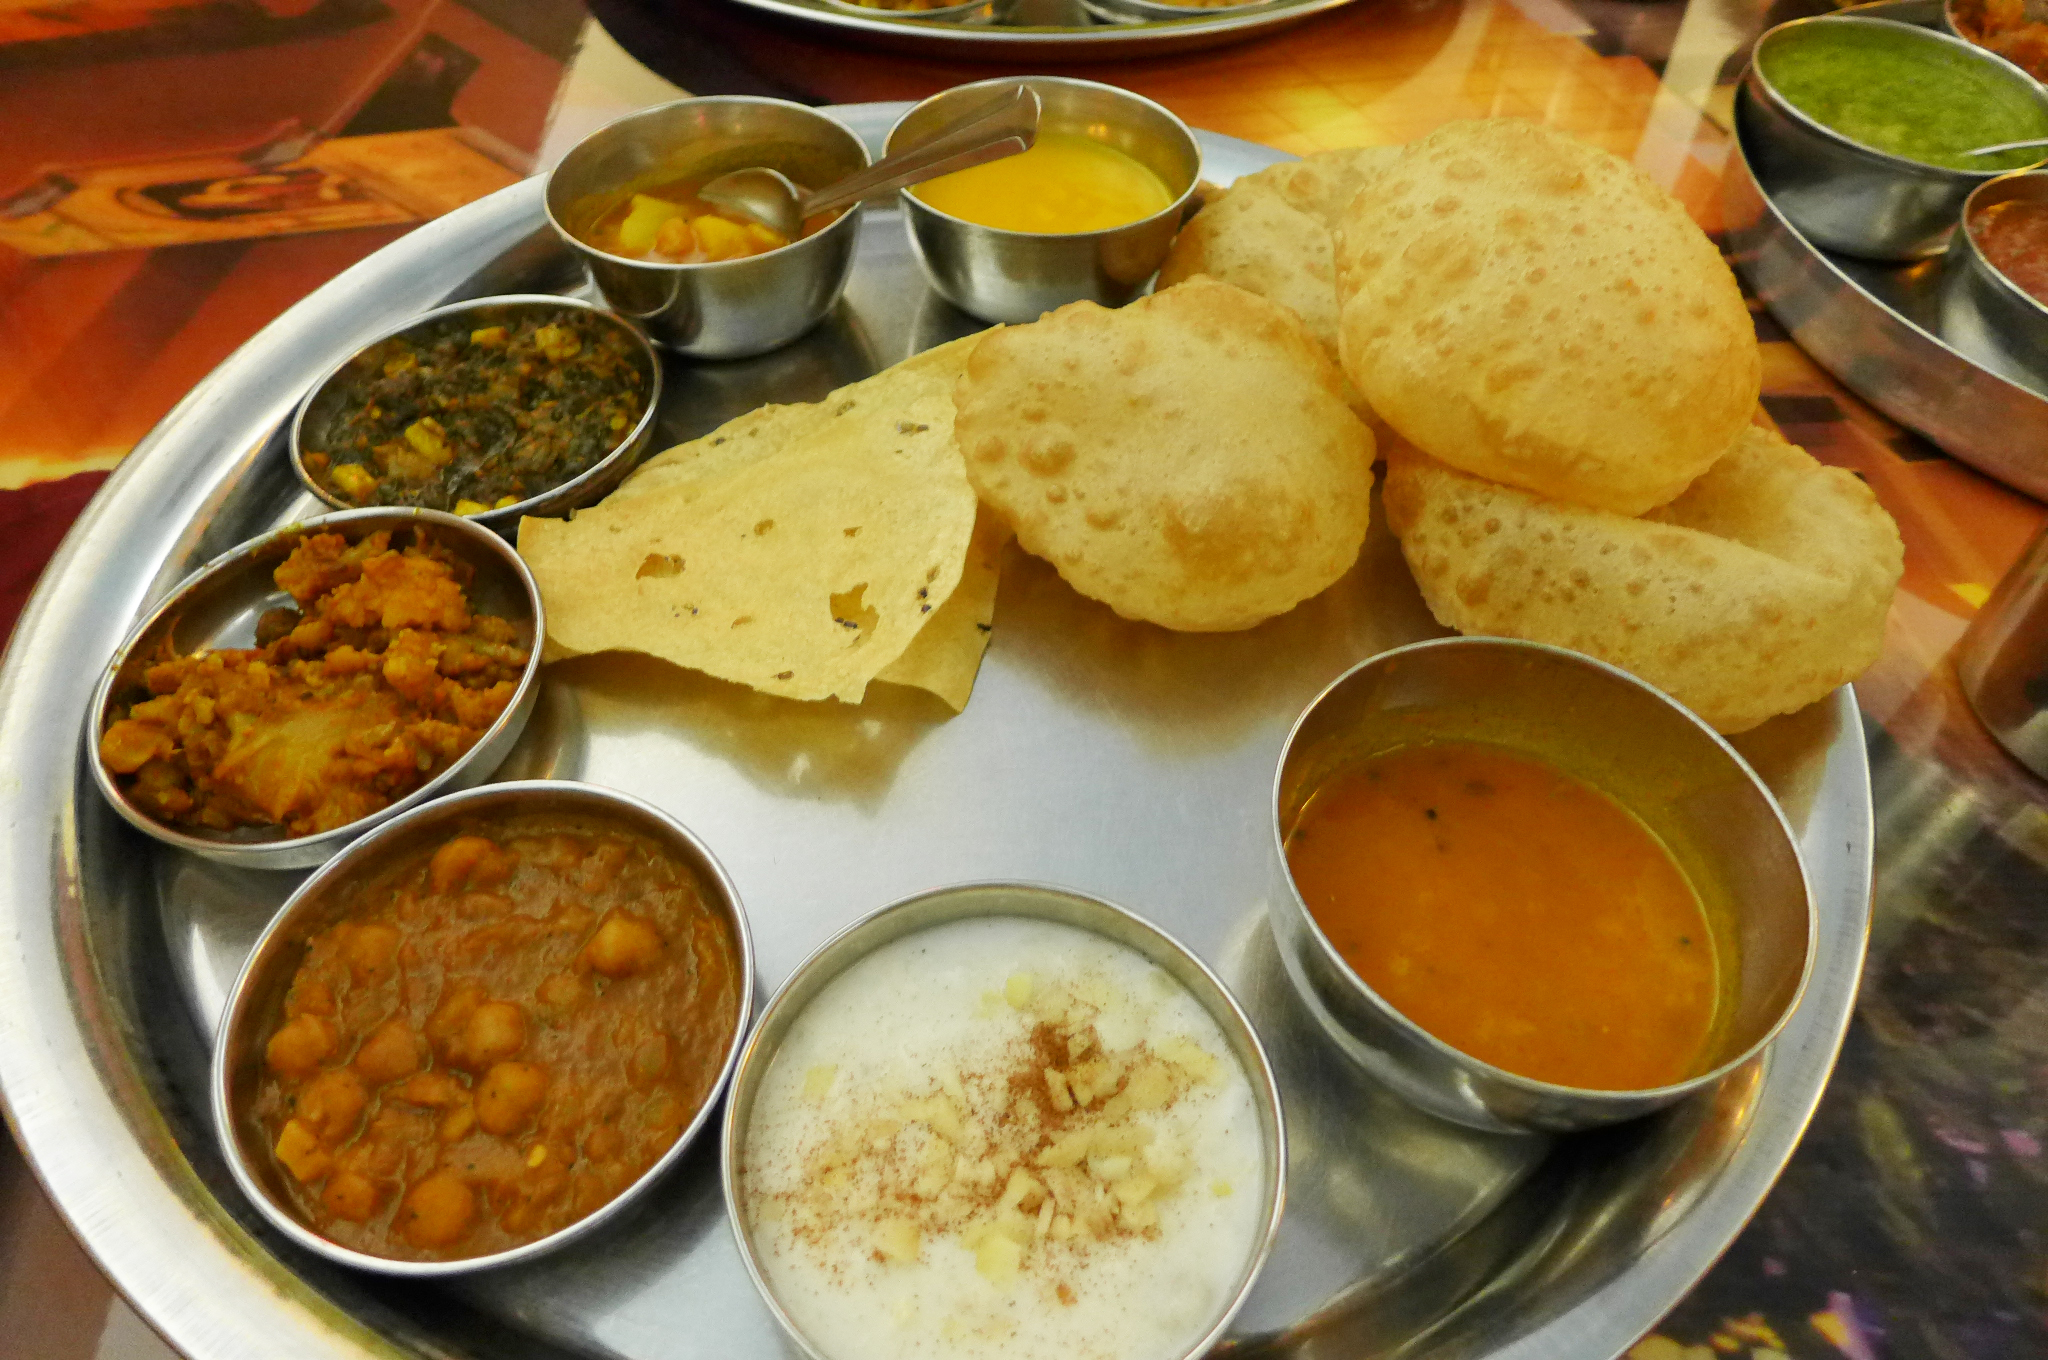 A round metal tray with little metal cups of curries and dals, with small puffy flatbreads.